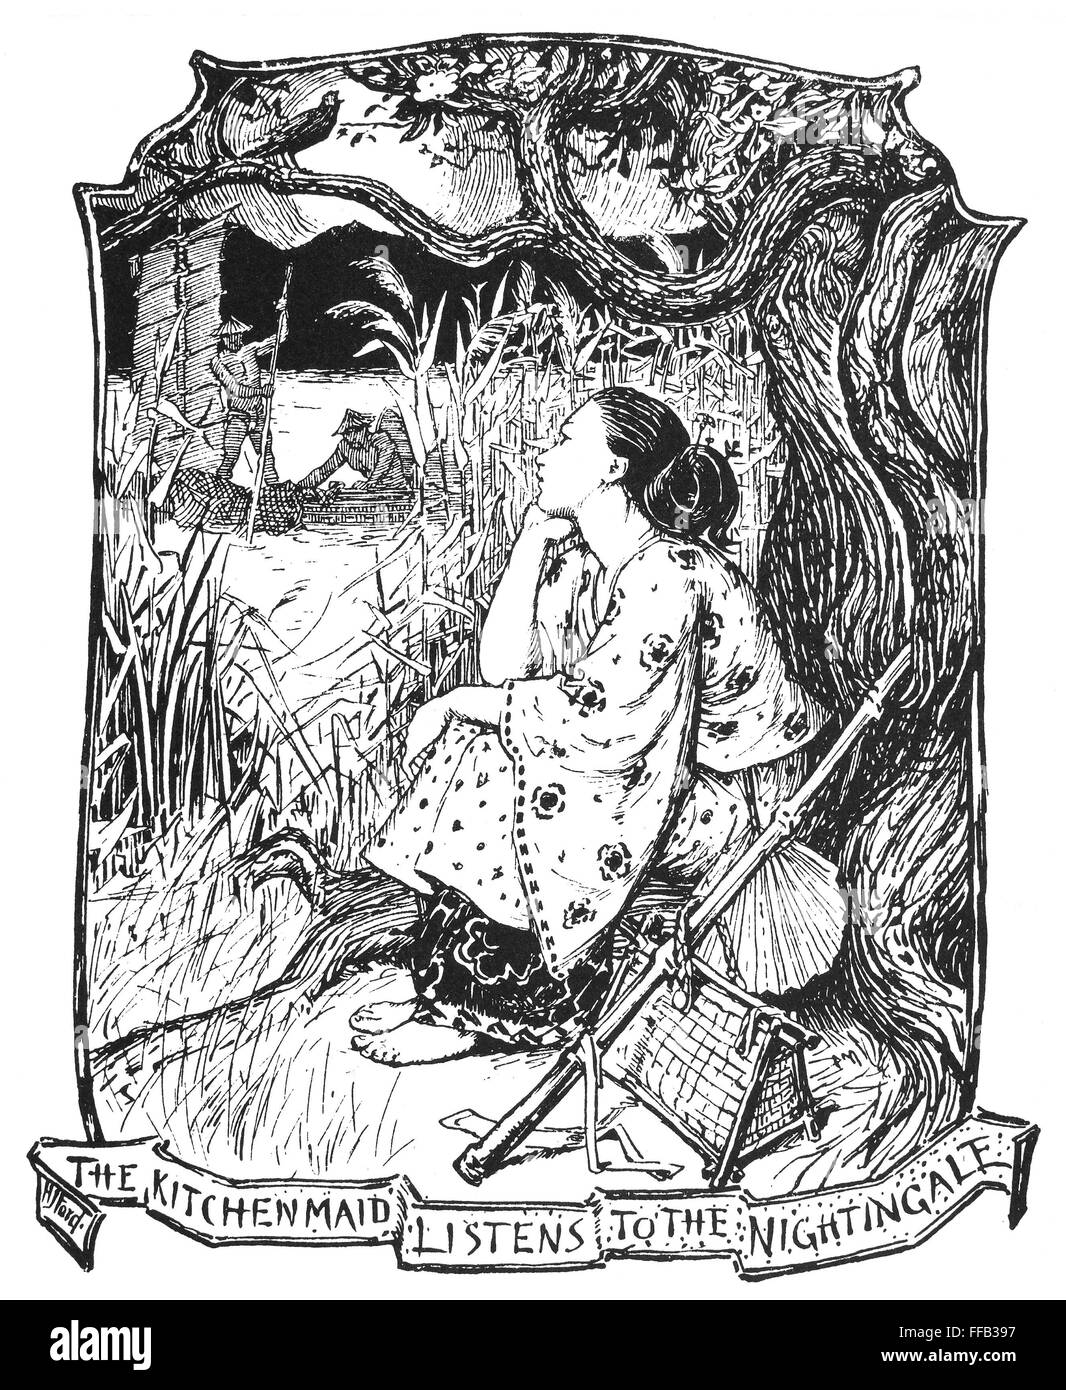 /nu0027The Kitchen Maid Listens To The Nightingale.u0027 Drawing By Henry J. Ford  For The Fairy Tale By Hans Christian Andersen.